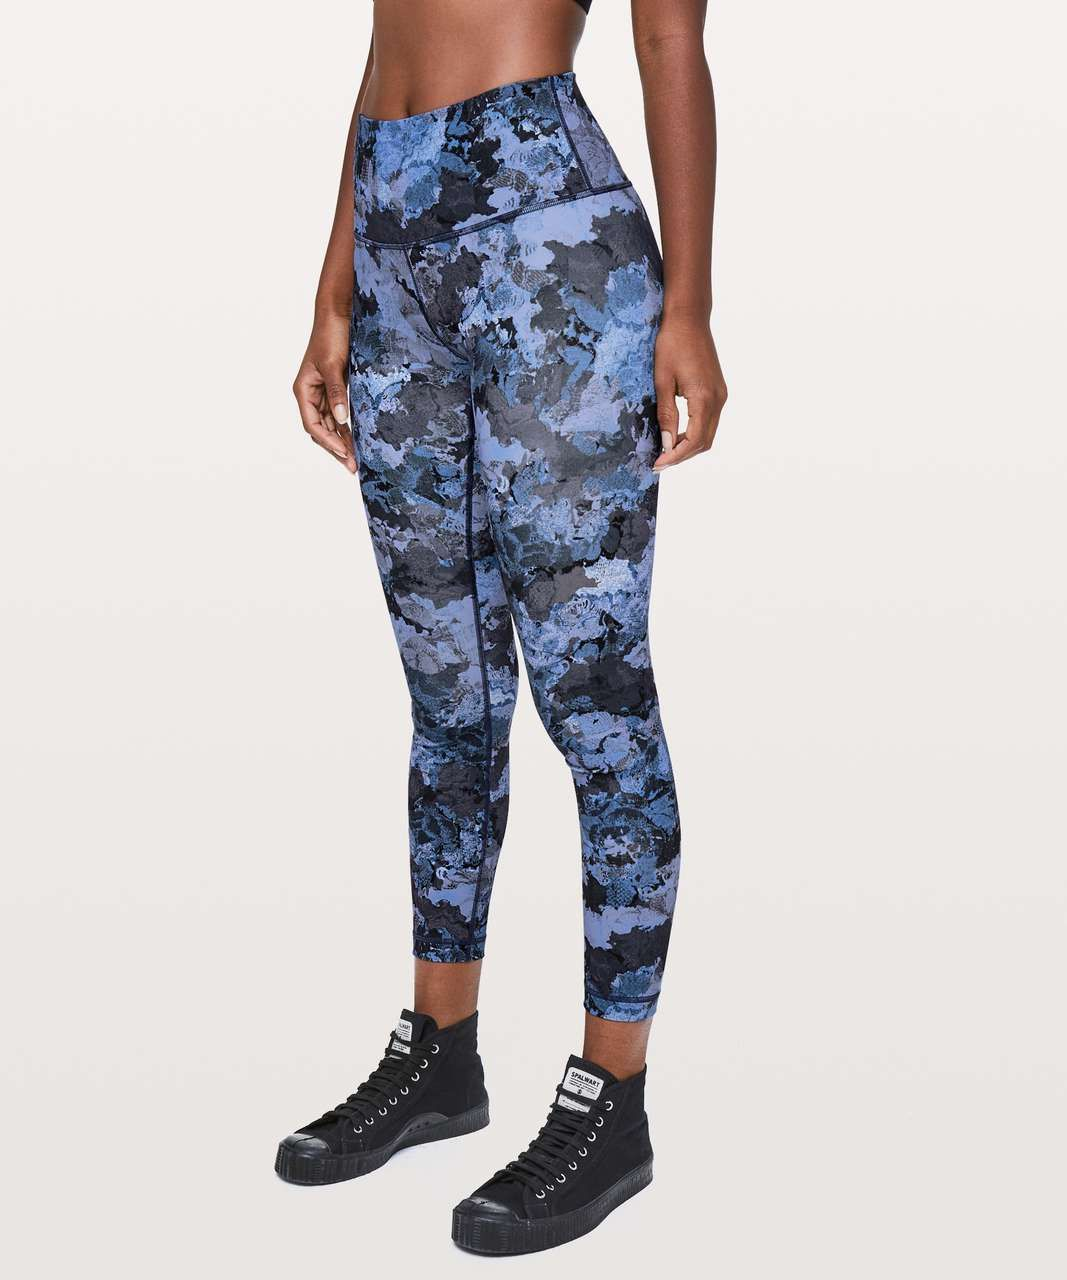 00f84b4ba08e95 Materials: Full-On® Luxtreme. Color: Screen Camo Multi. We updated our  classic High Times pant to create these high-rise 7/8 tights—perfect for  yoga or the ...